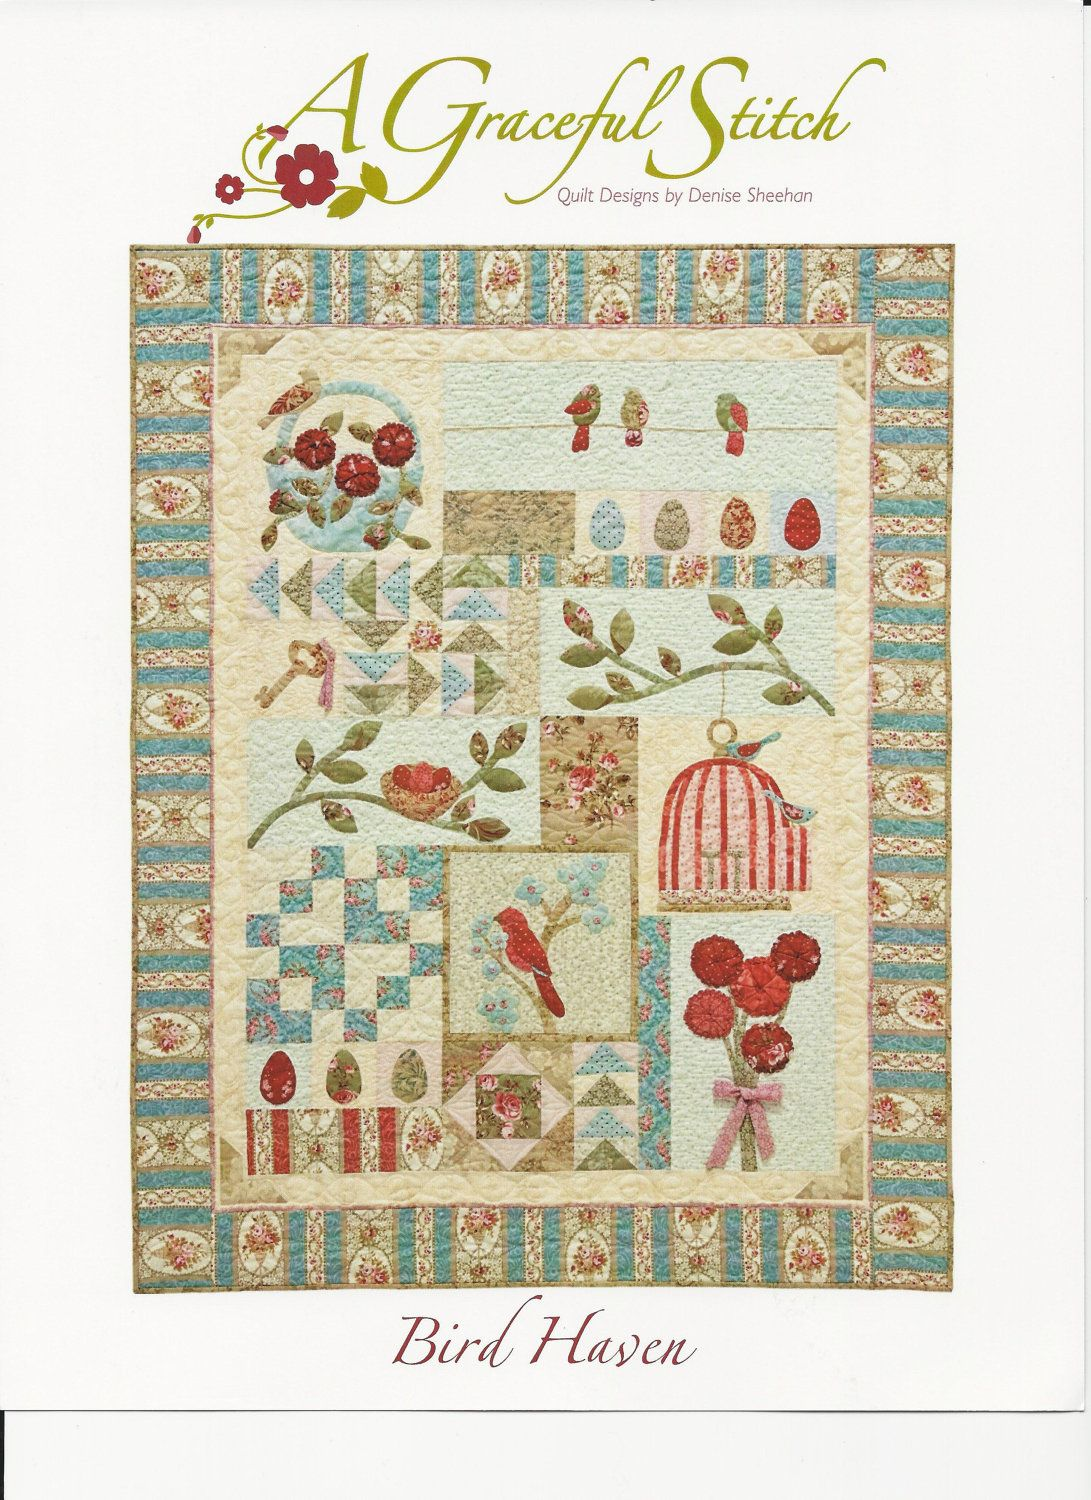 Bird Haven Quilt Pattern Set by Denise Sheehan via Etsy.